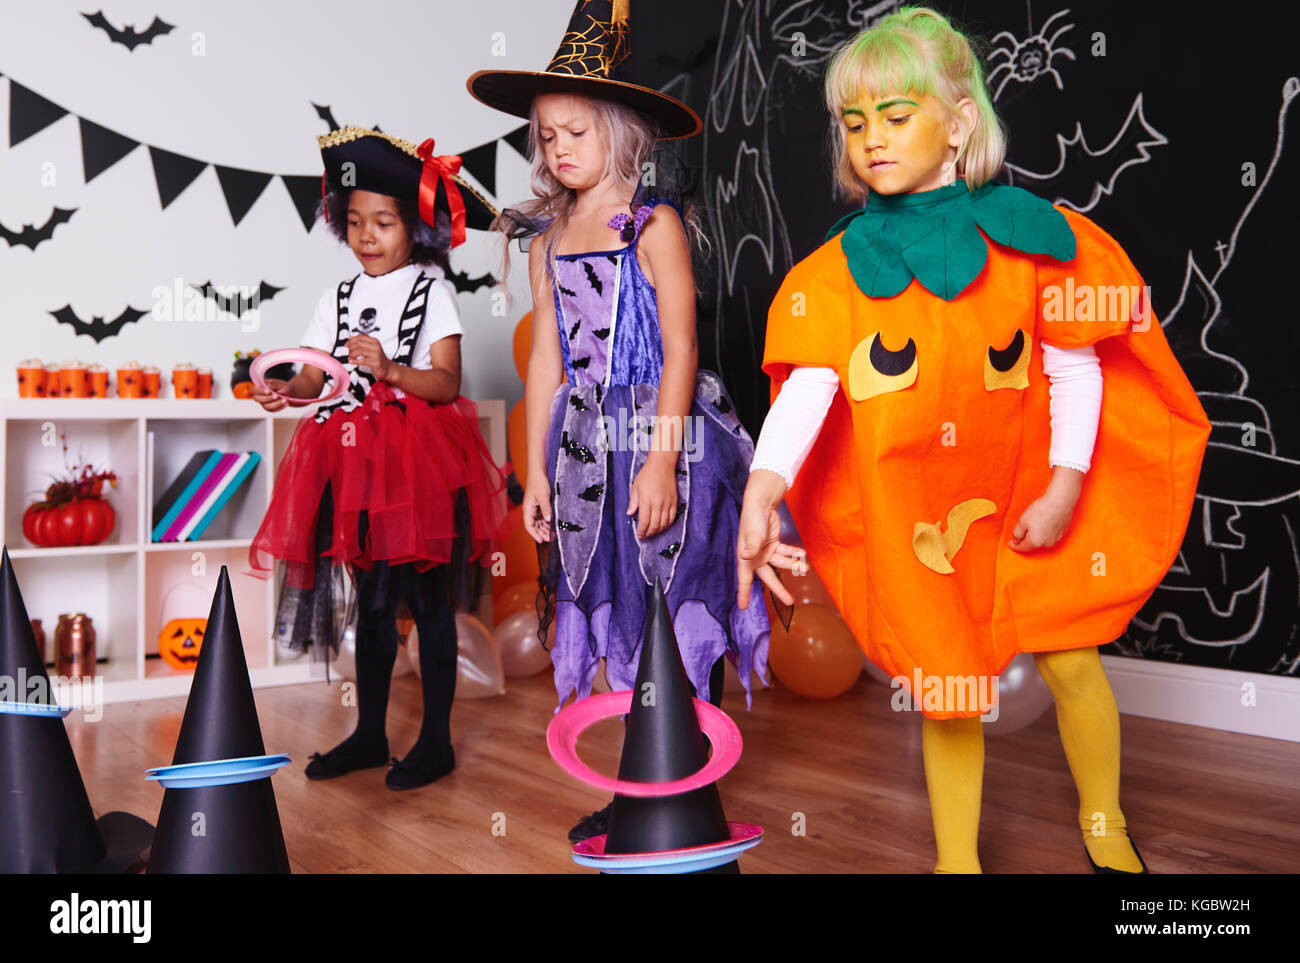 Children actively spending time at Halloween party - Stock Image